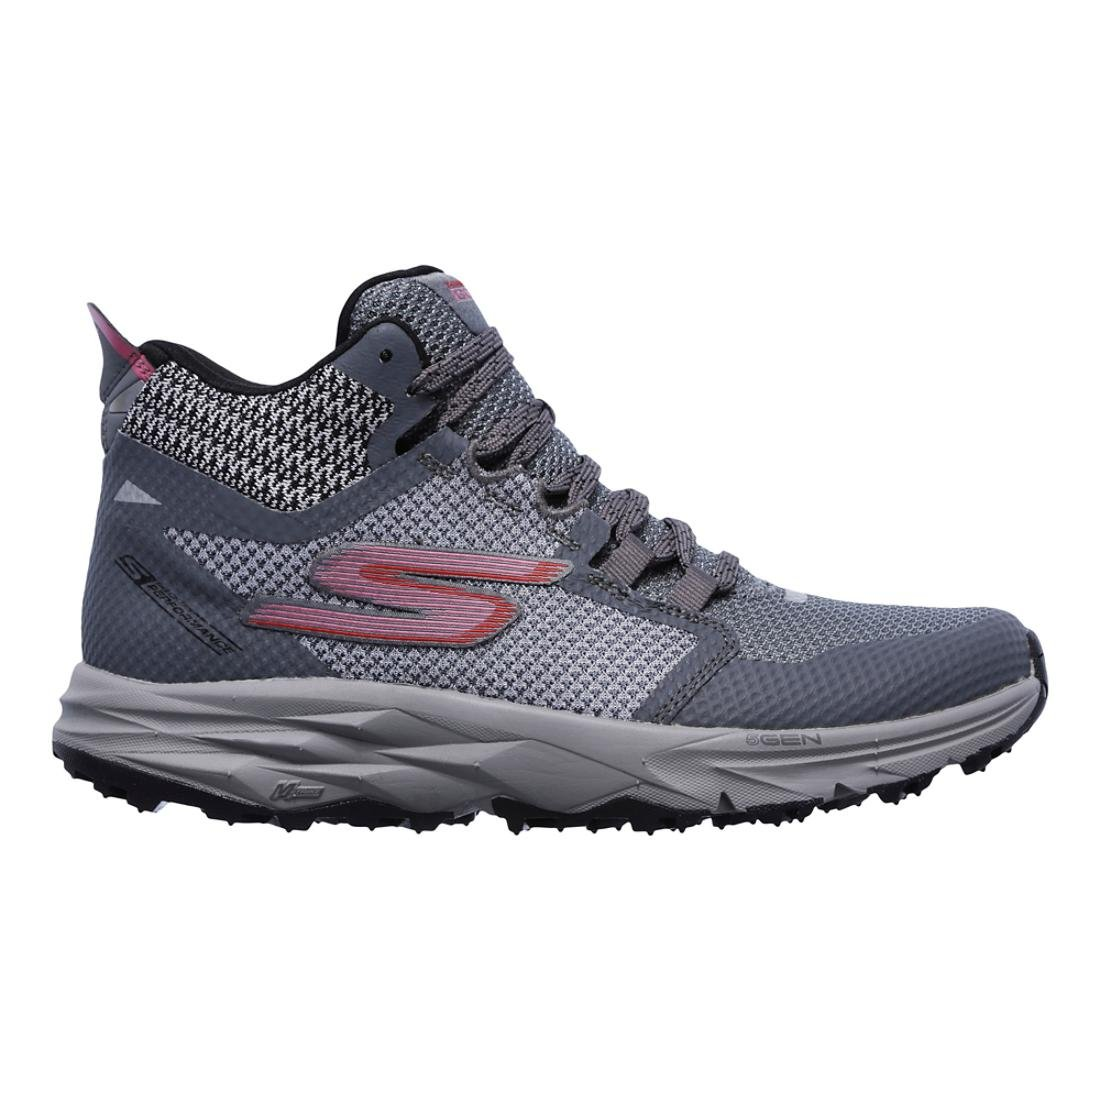 Skechers Women's Go Trail 2 - Grip Hiking Shoe B077H1P17Z 7.5 B(M) US|Gray/Pink